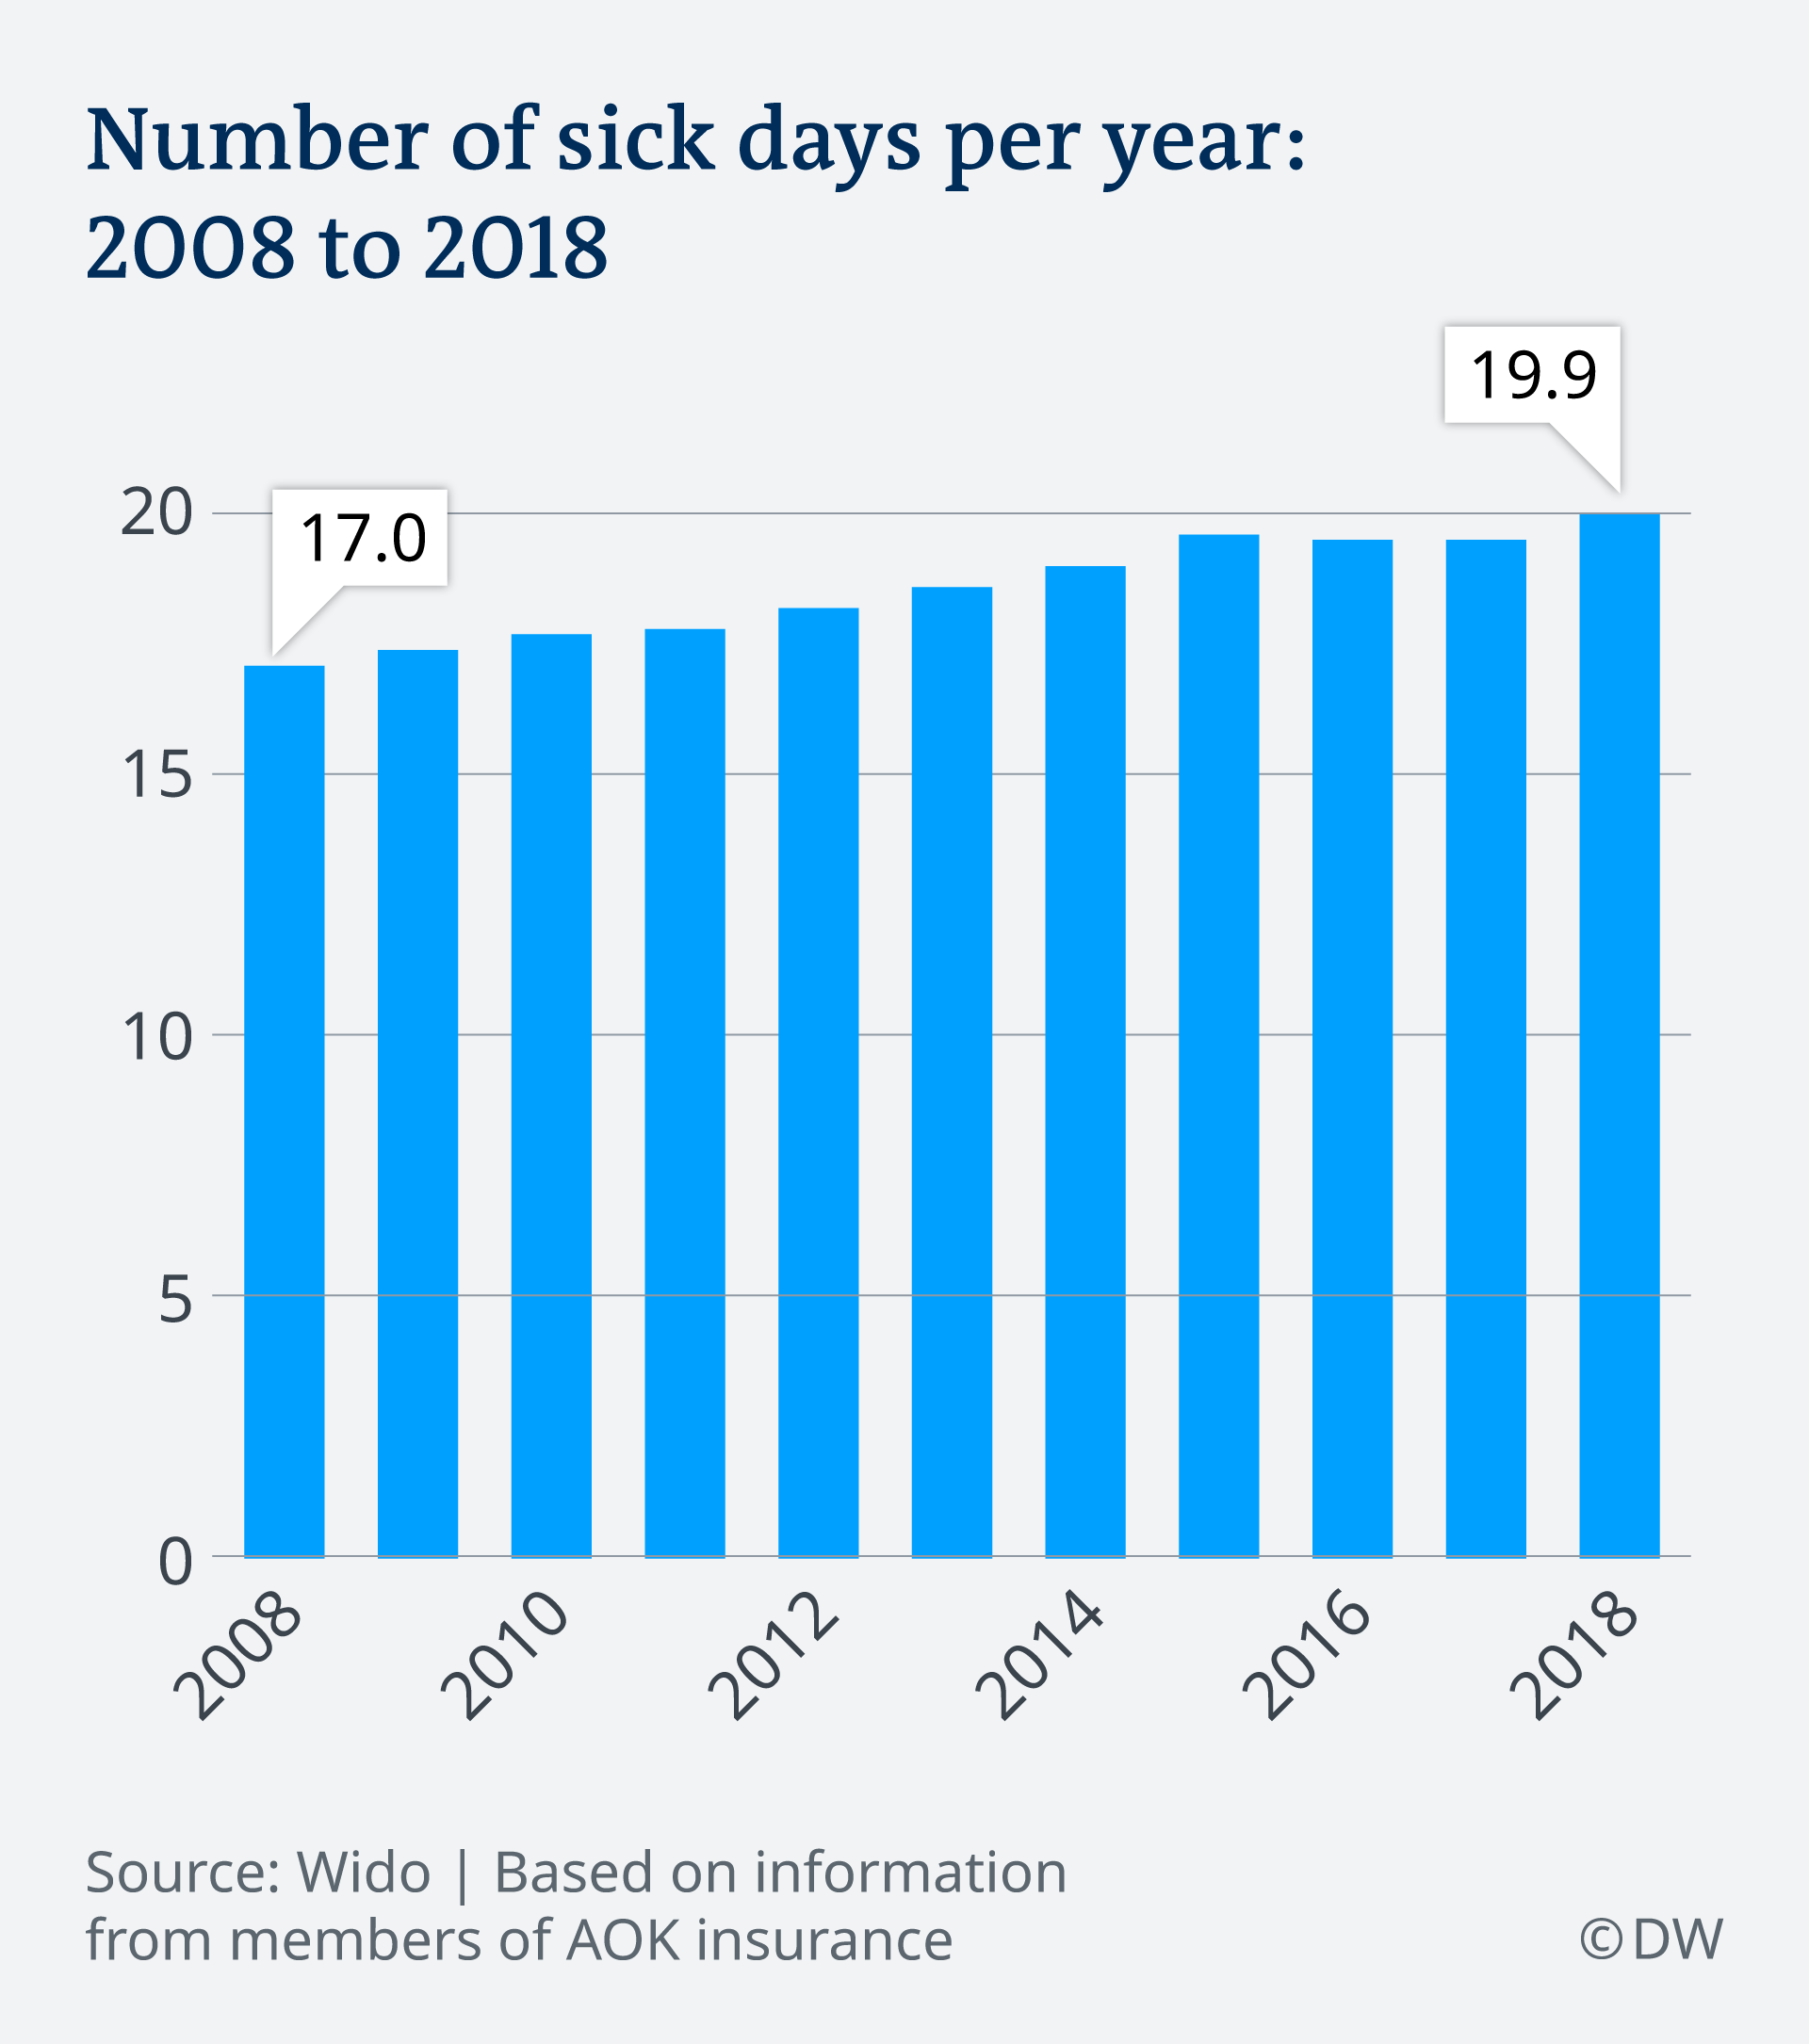 Infographic of number of sick days per year in Germany